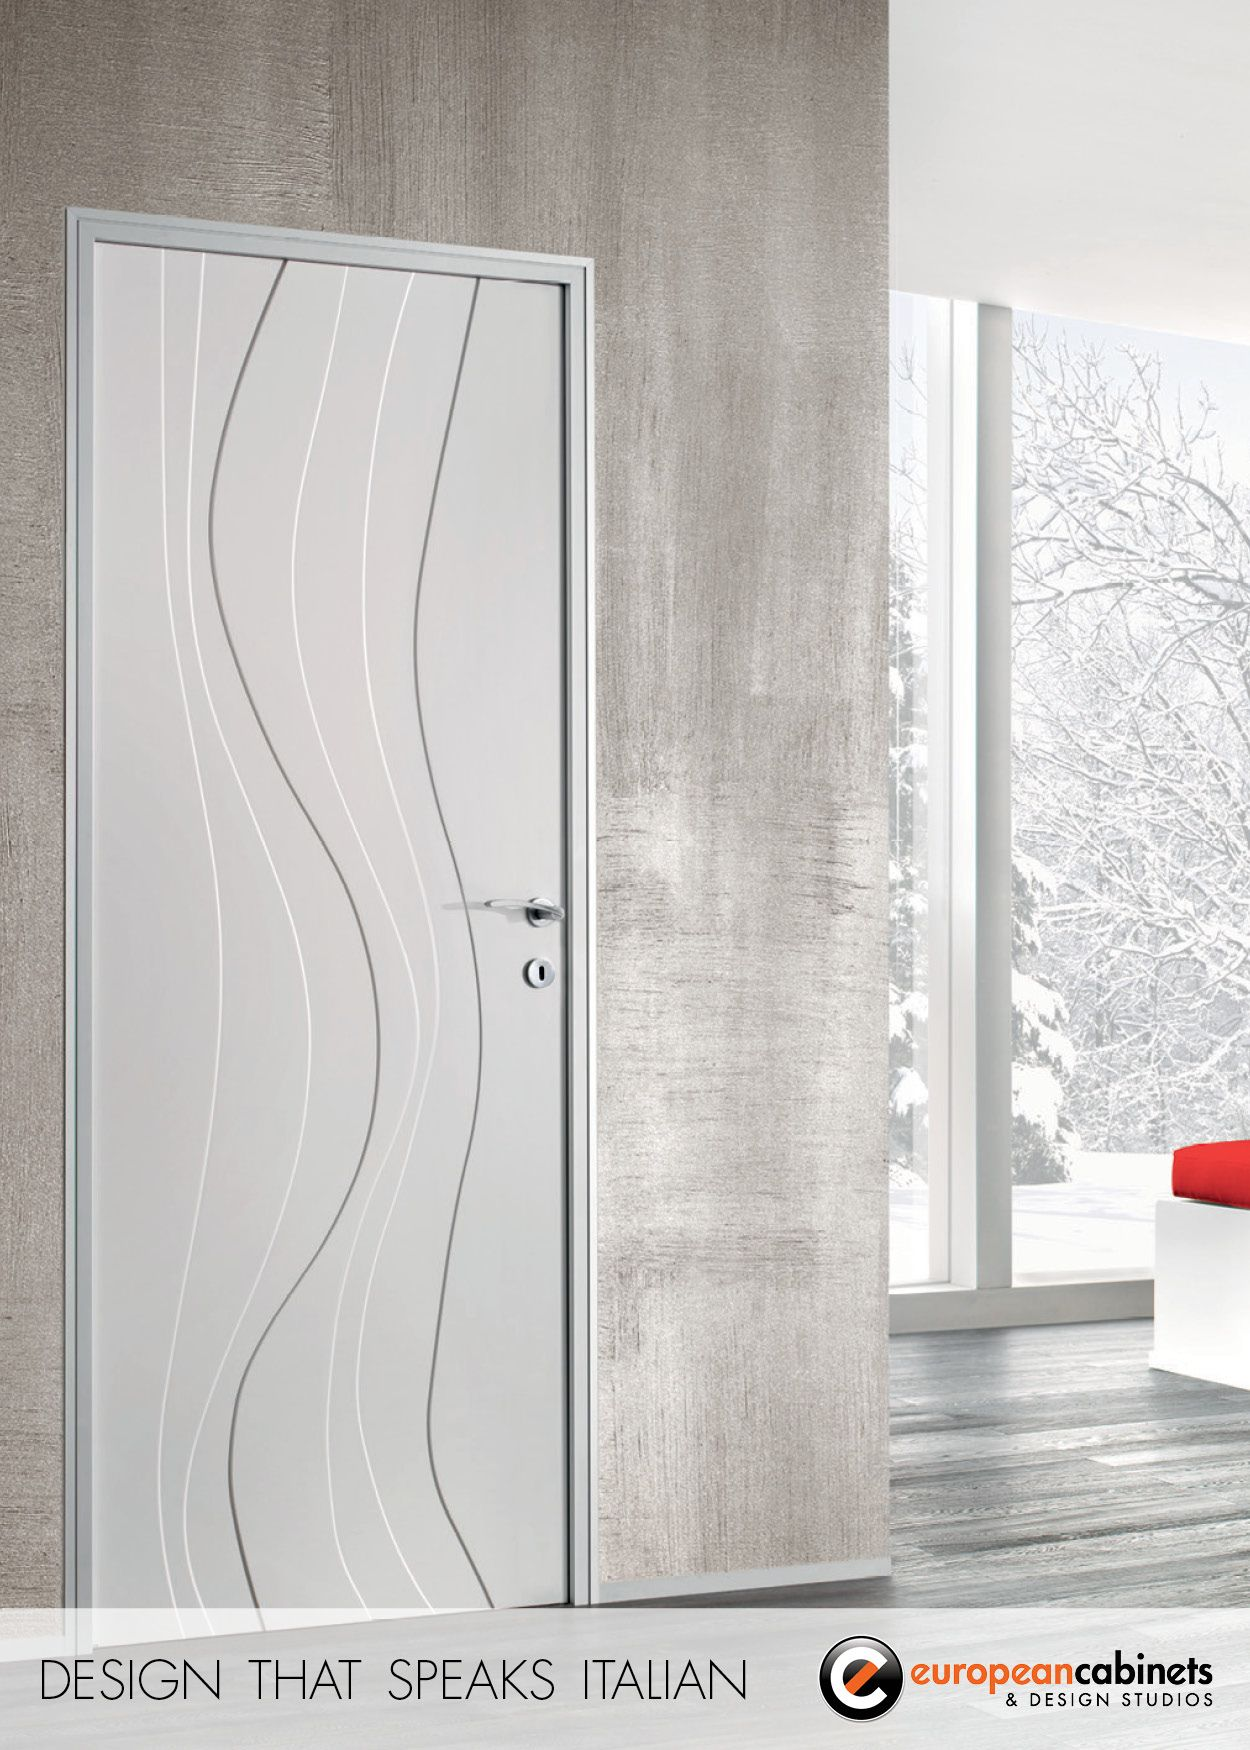 Custom doors by barausse wave pattern doors and modern custom doors by barausse eventelaan Gallery